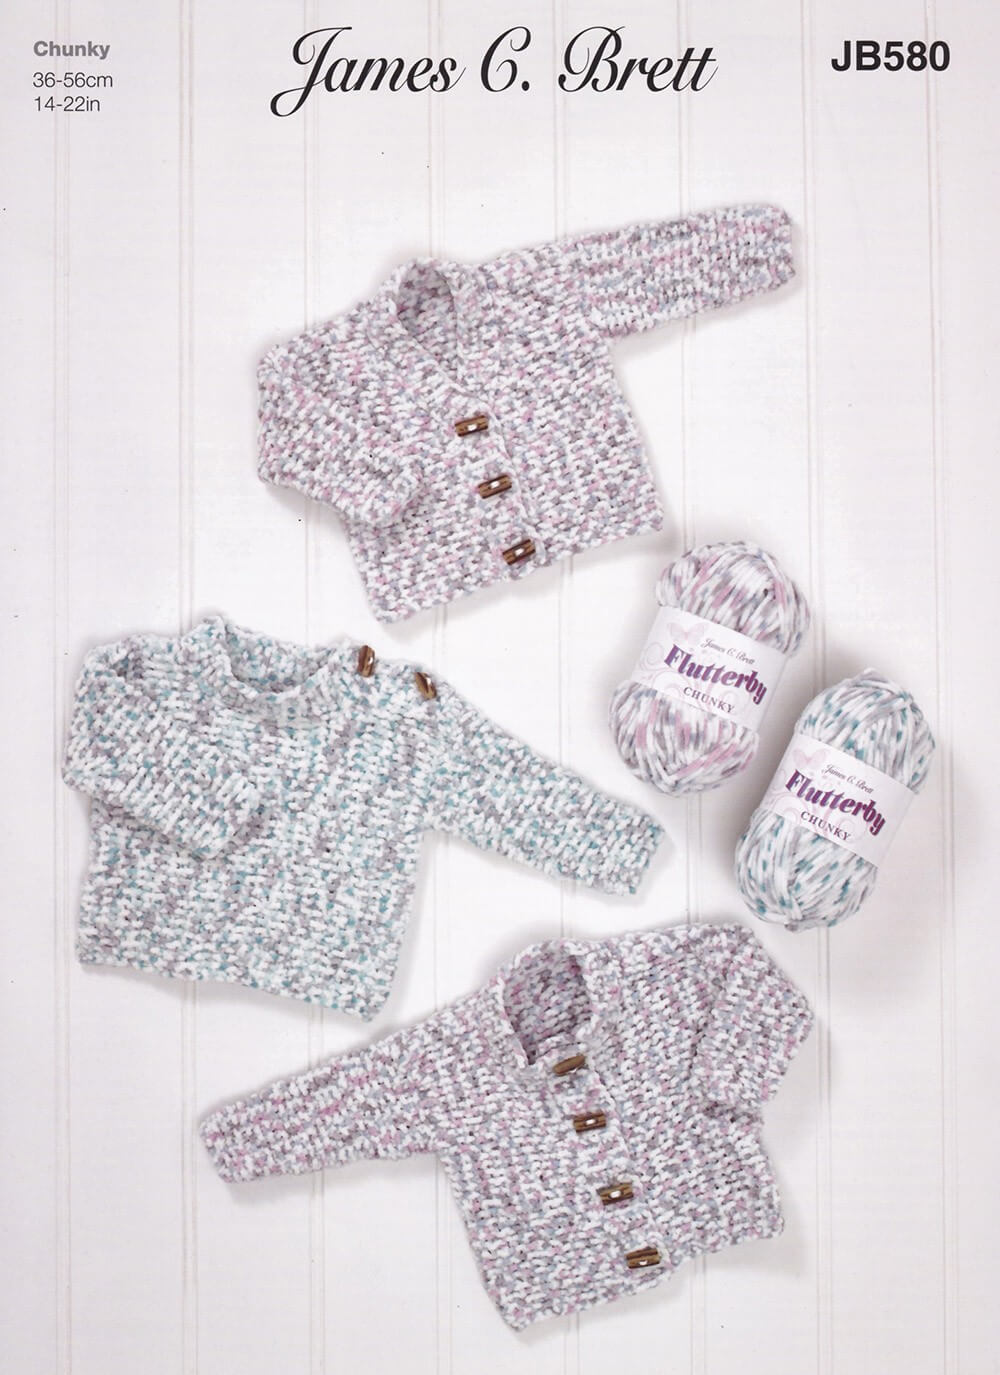 Knitting Pattern James C Brett JB580 Baby Chunky Cardigan & Jumper